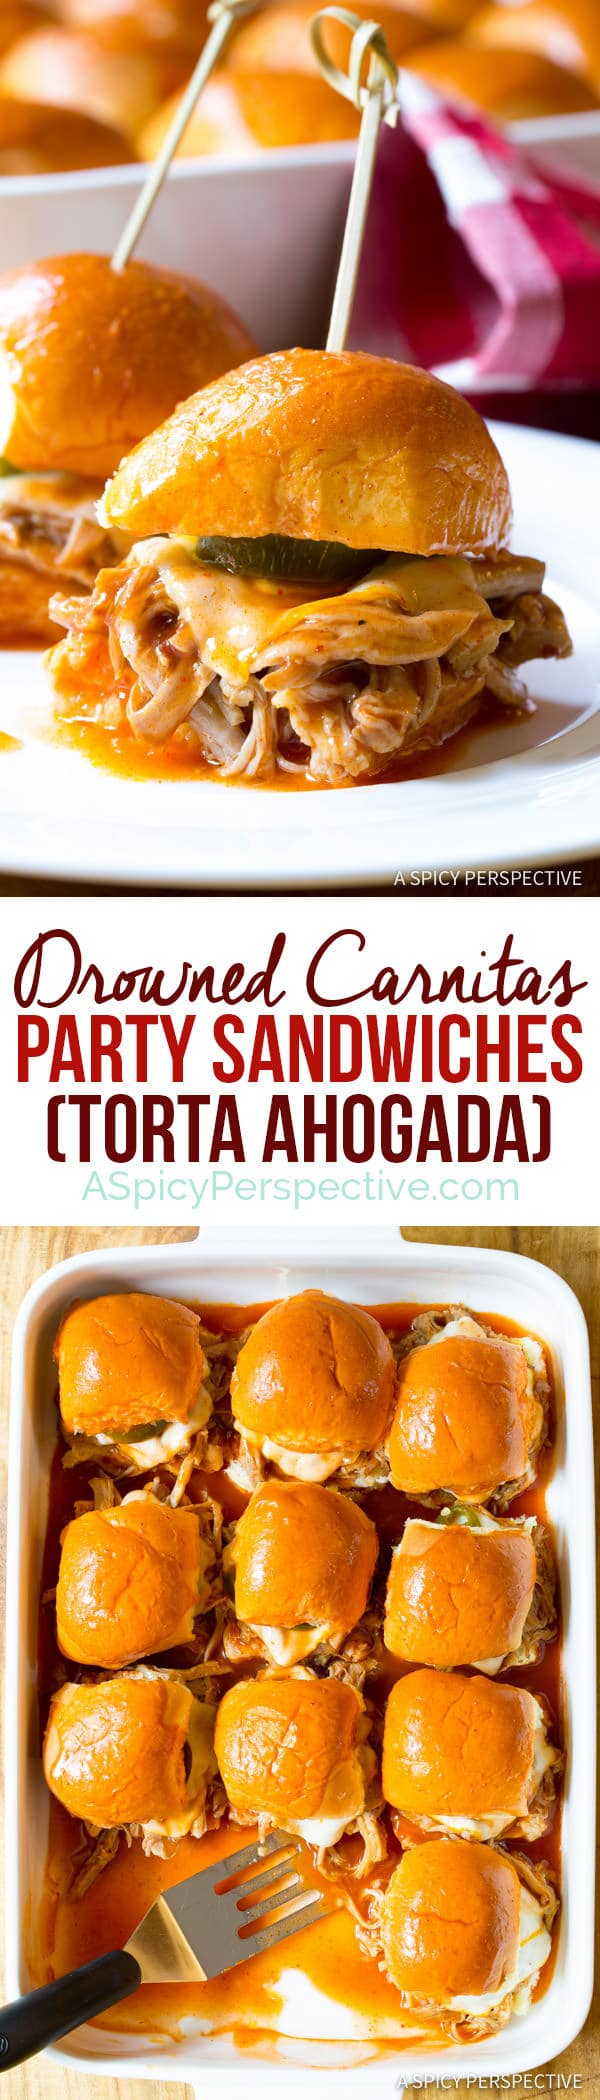 Amazing Drowned Carnitas Party Sandwiches (Torta Ahogada)   ASpicyPerspective.com